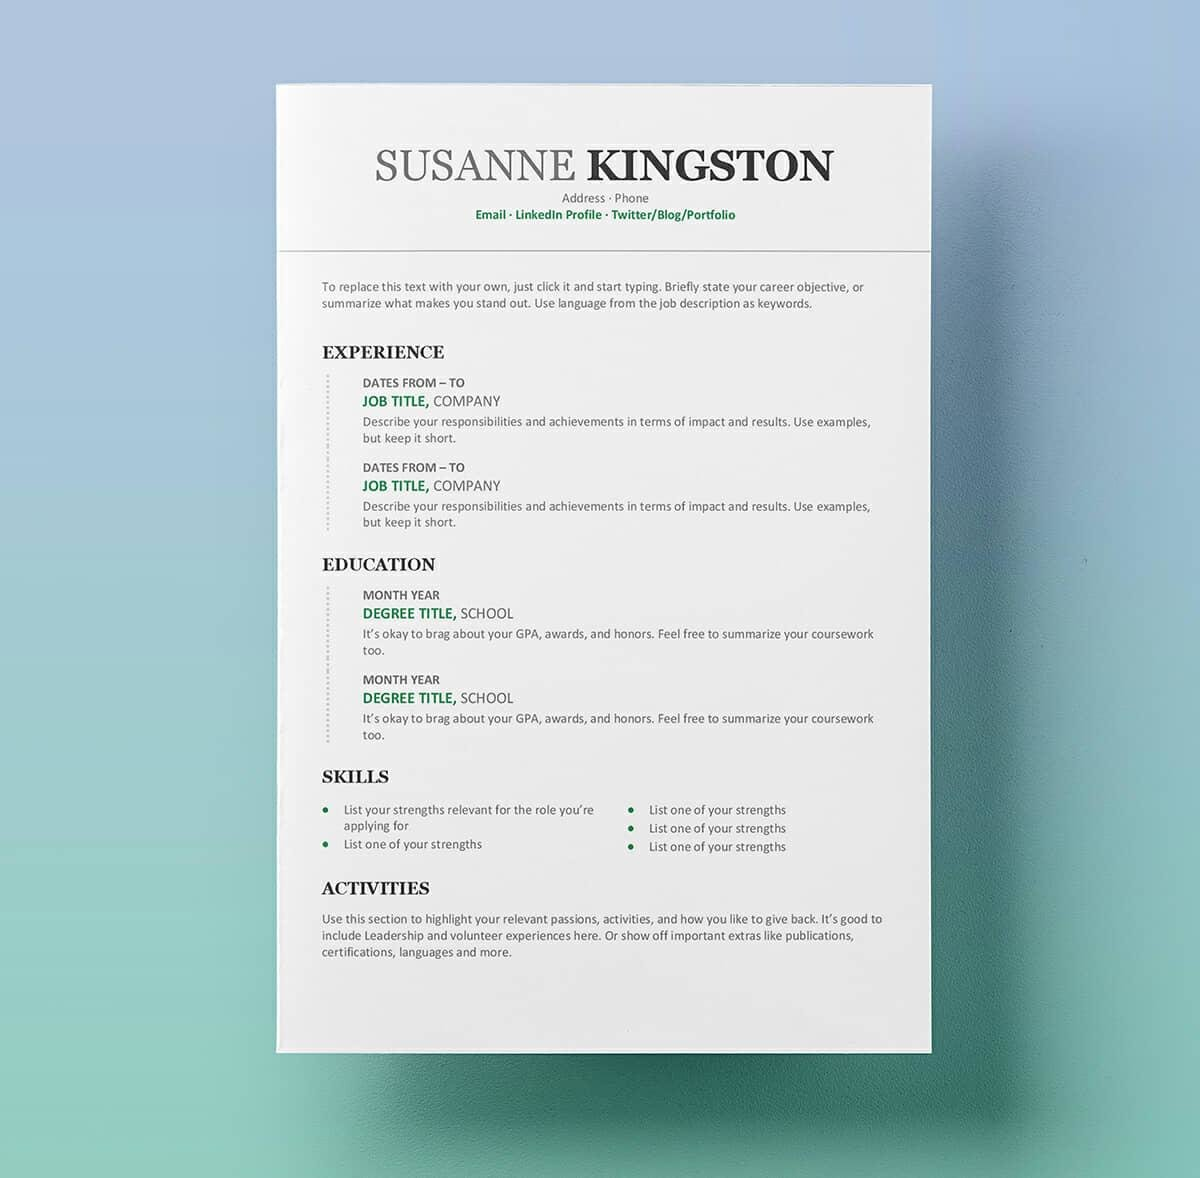 resume templates for word free 15 examples for download - Free Resume Templates Word Document